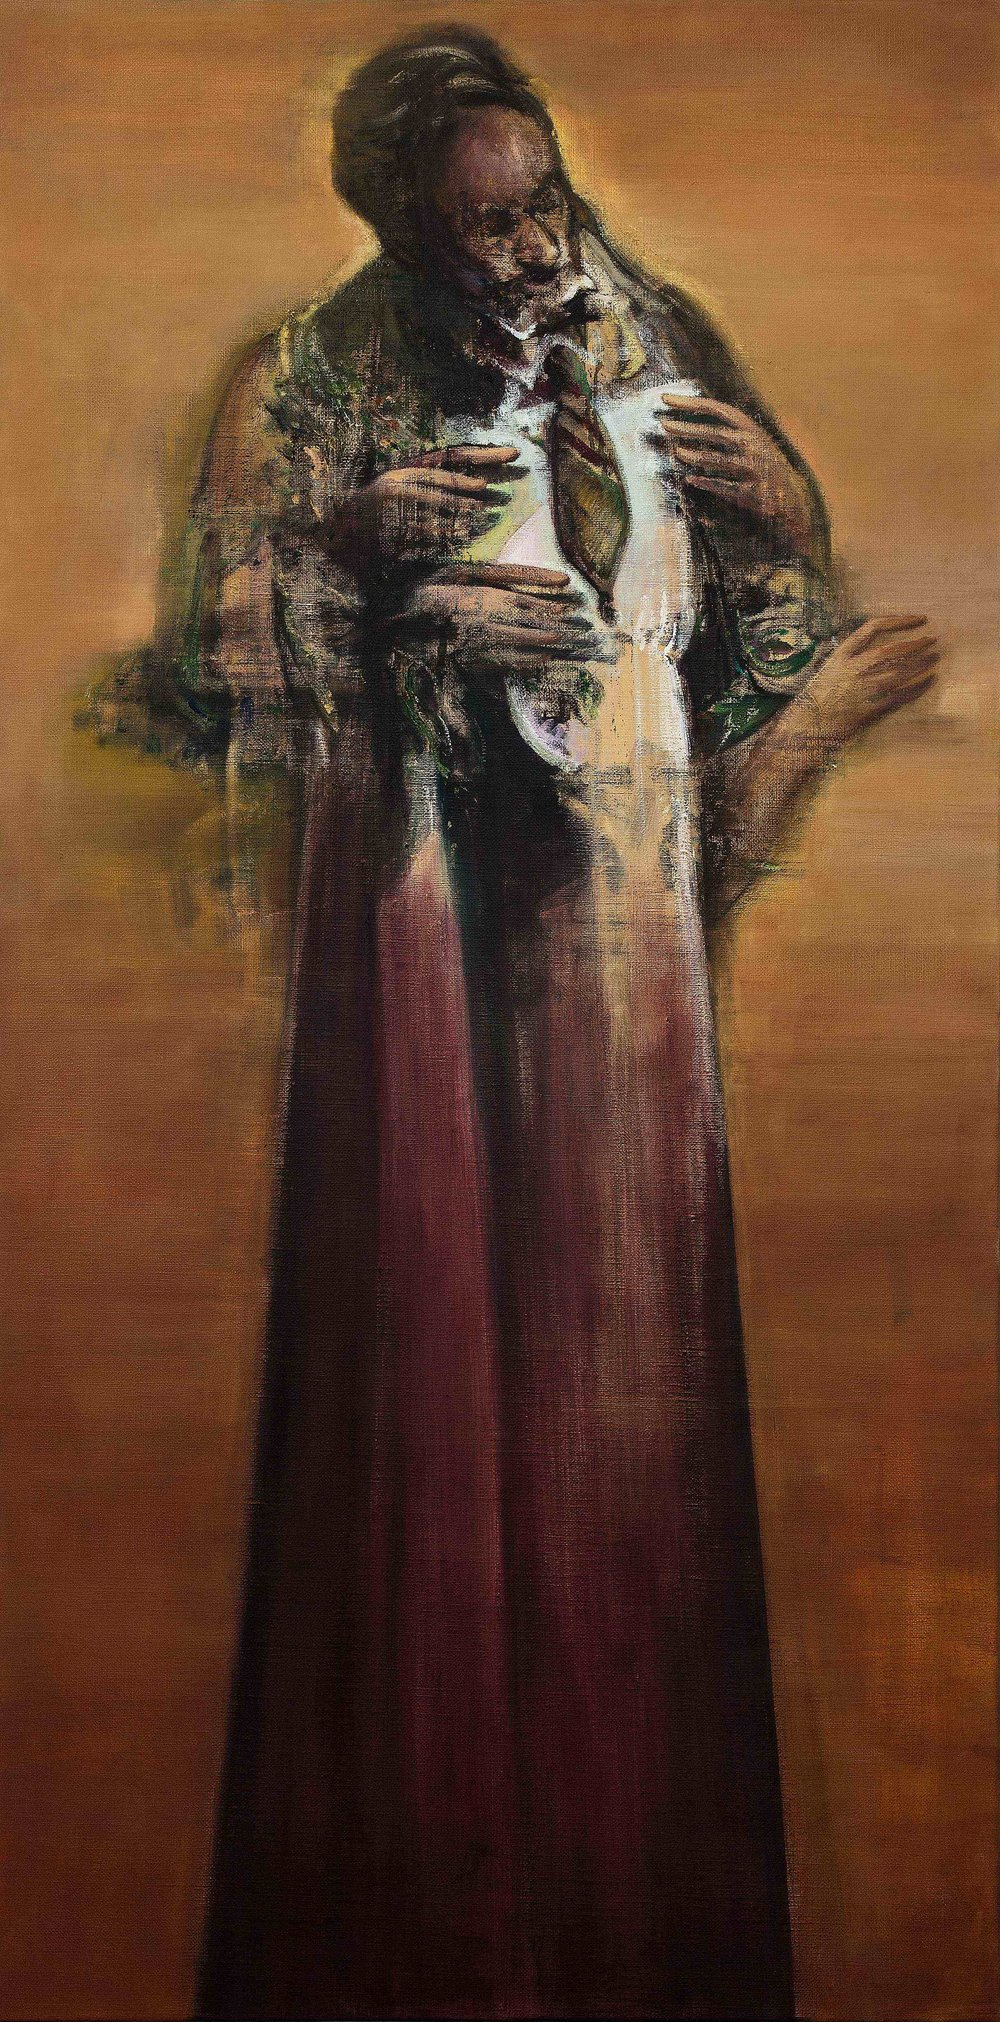 Nikos Aslanidis, The Orator (Alchemist), 2016, oil on linen, 200 x 100 cm